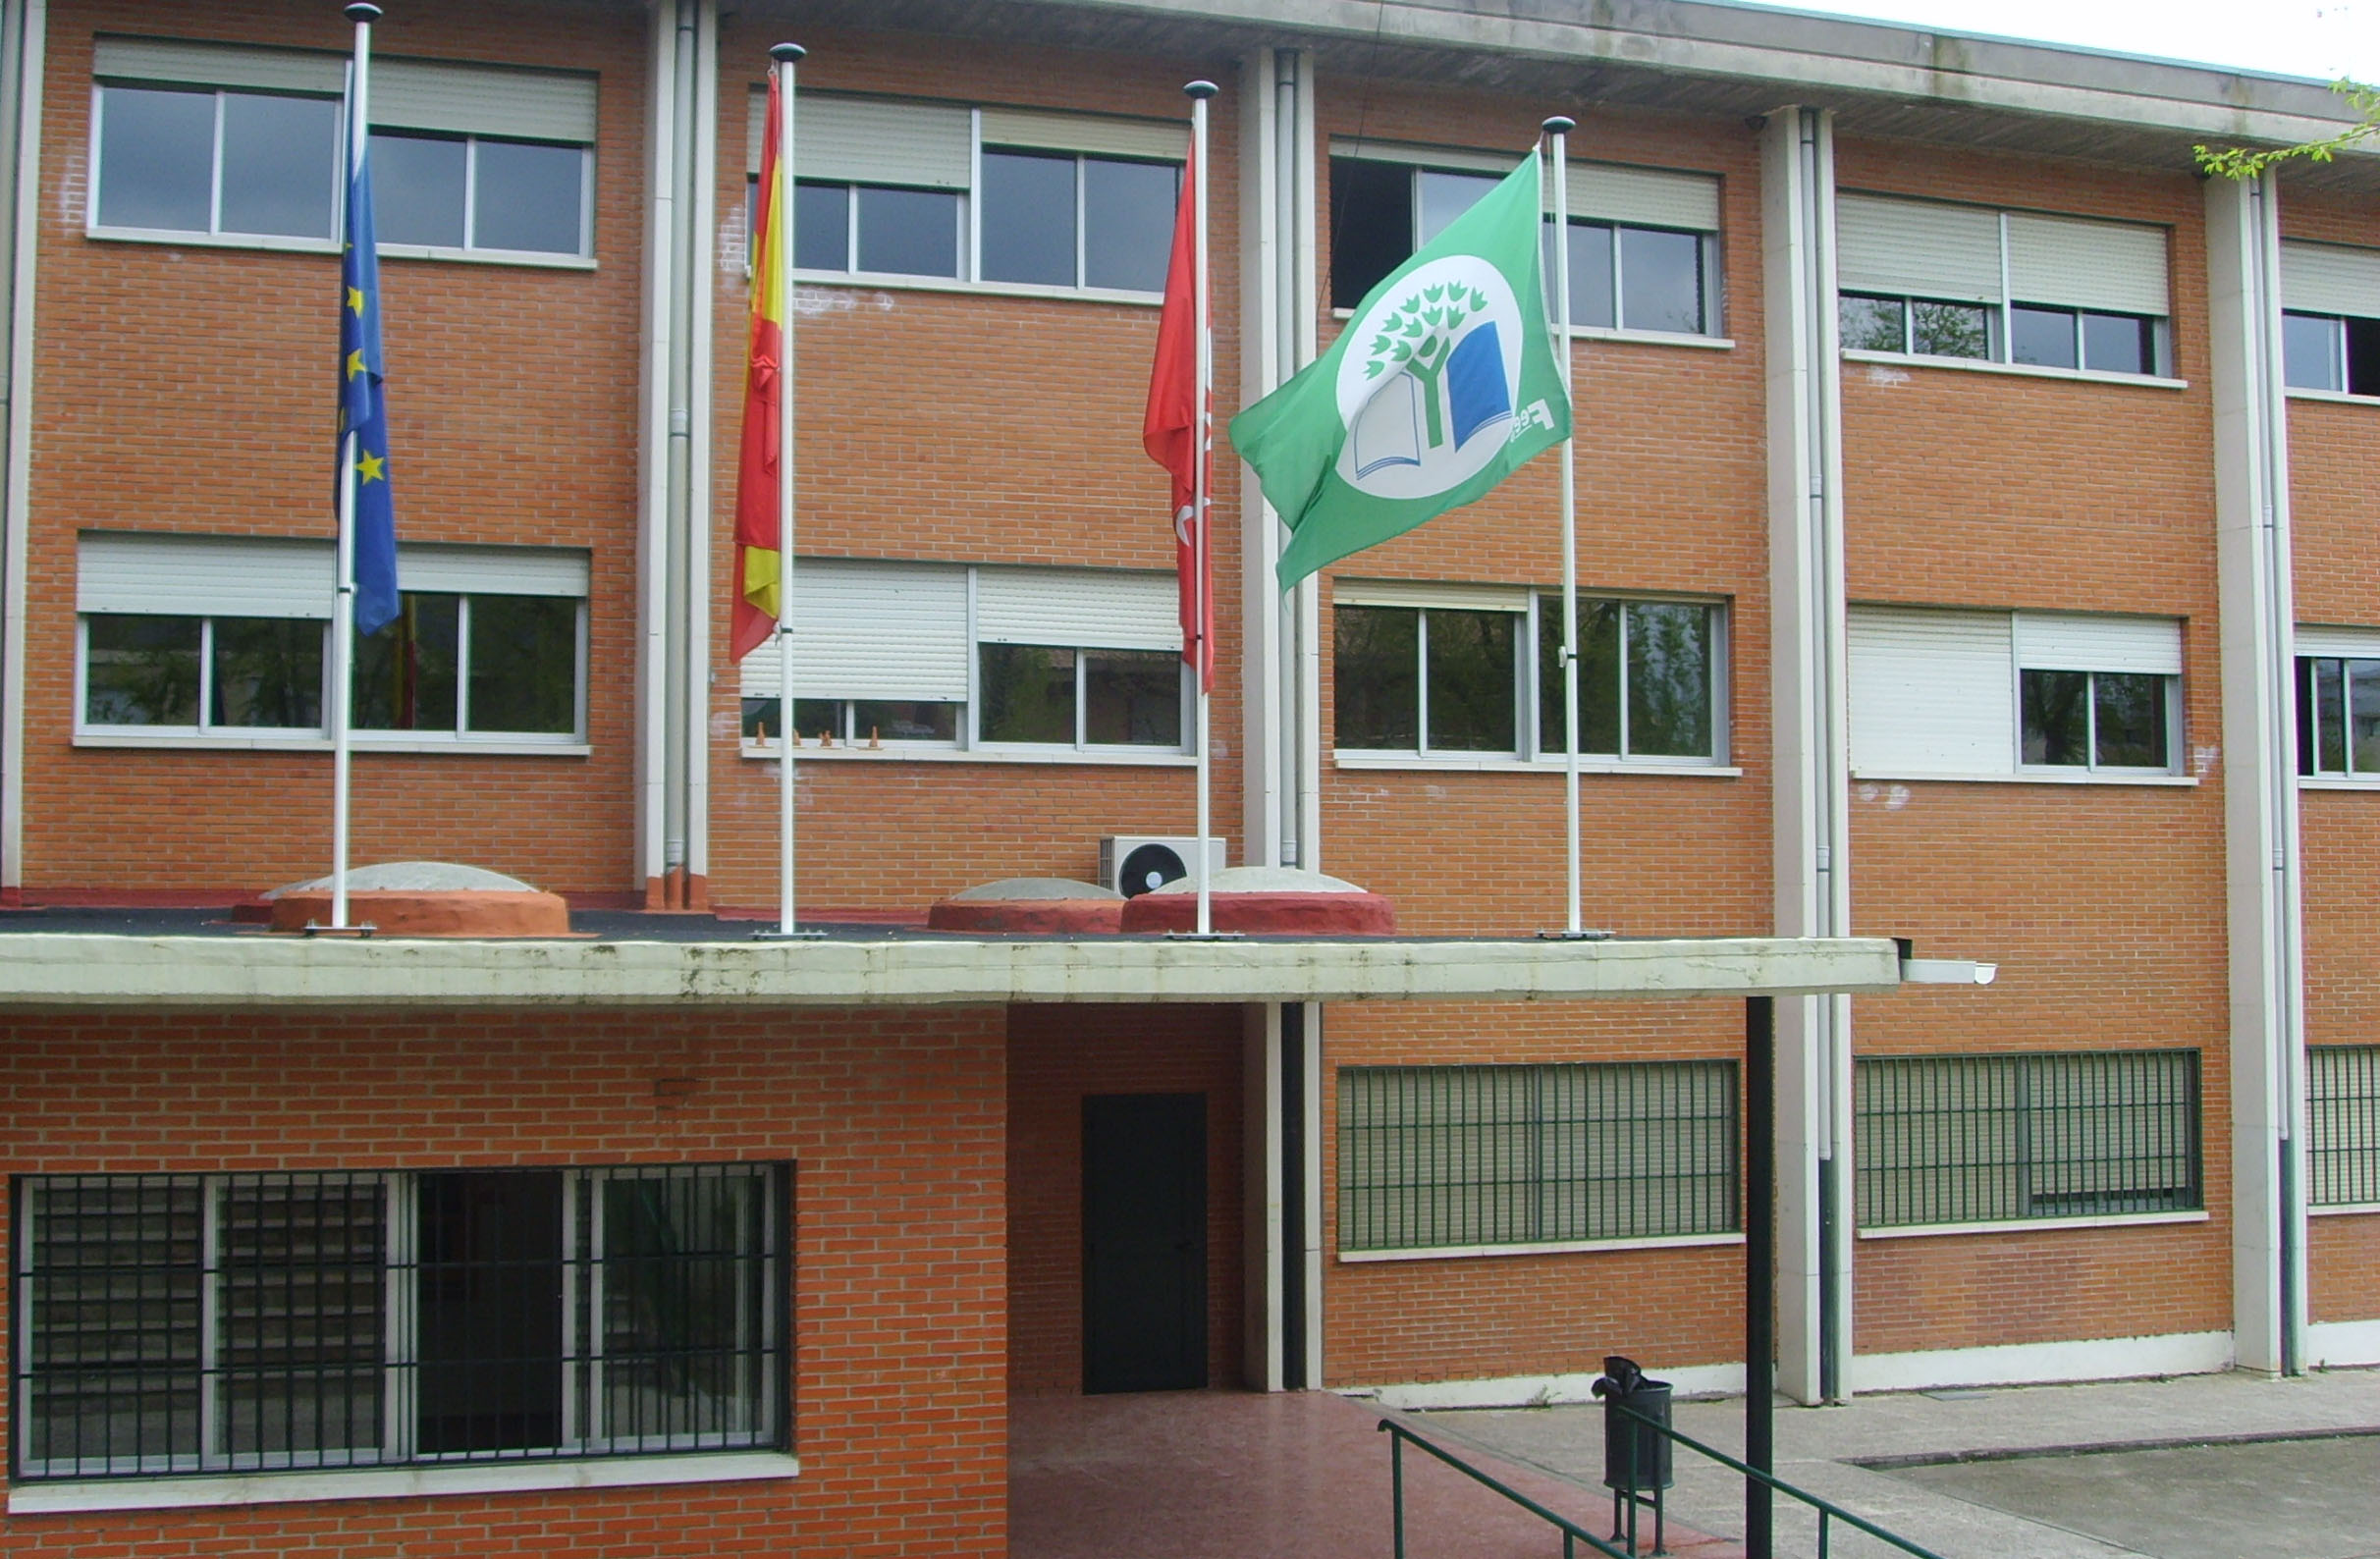 Rafael's school called IES CJC near Madrid